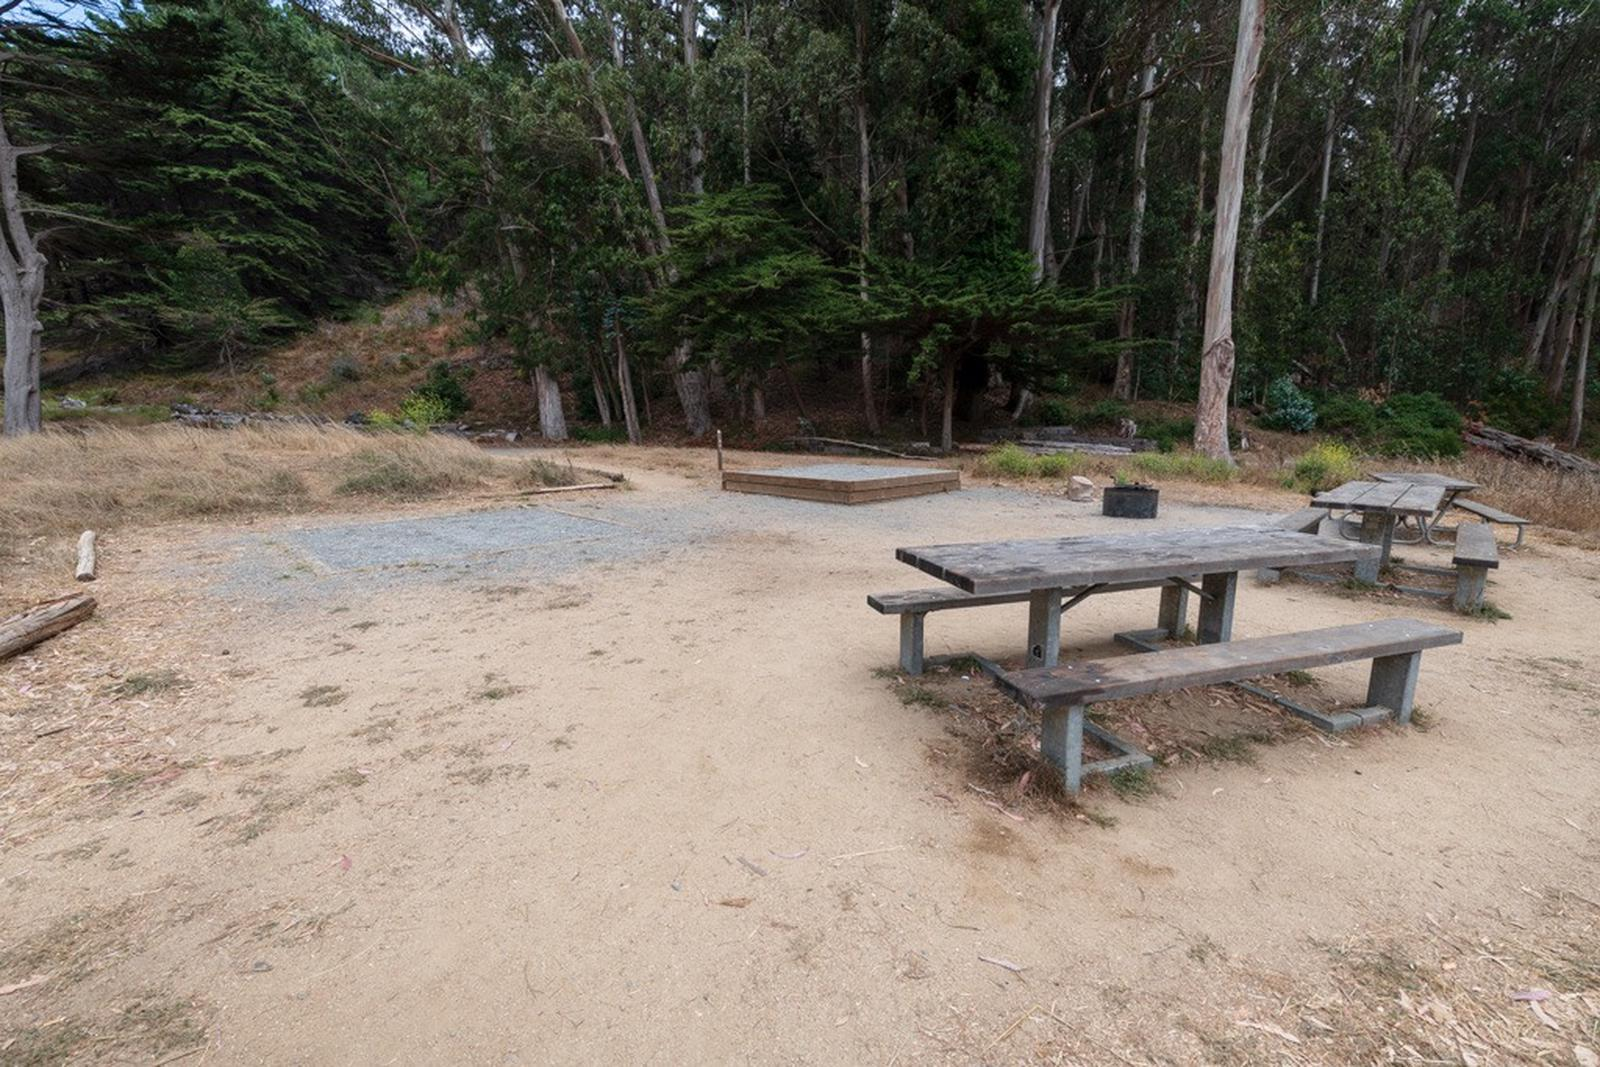 Several picnic tables sit around a fire ring. A raised tent platform sits in the distance.